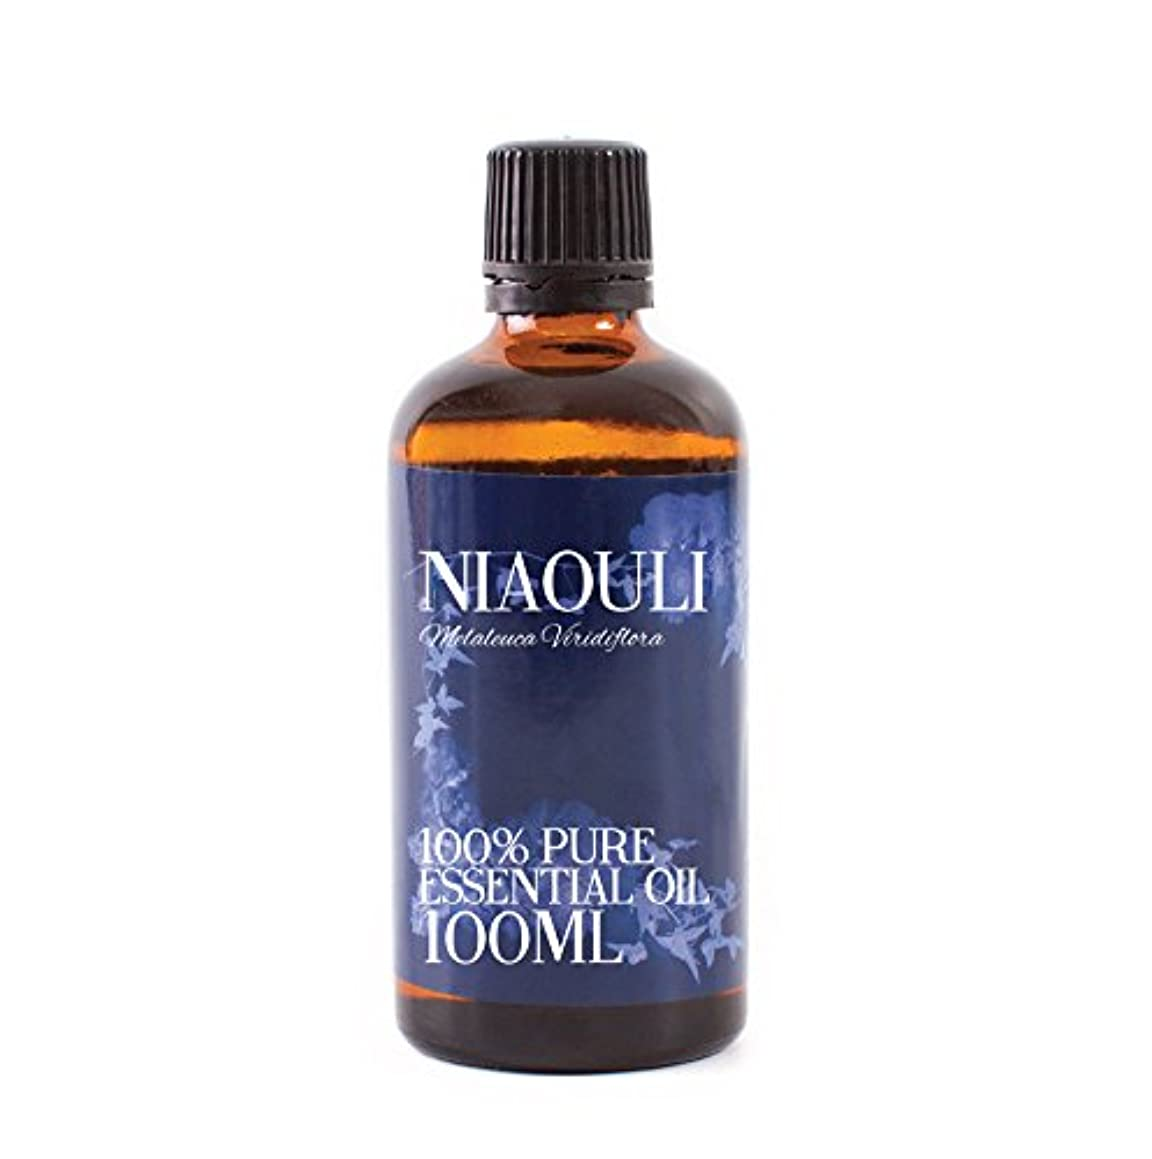 Mystic Moments | Niaouli Essential Oil - 100ml - 100% Pure